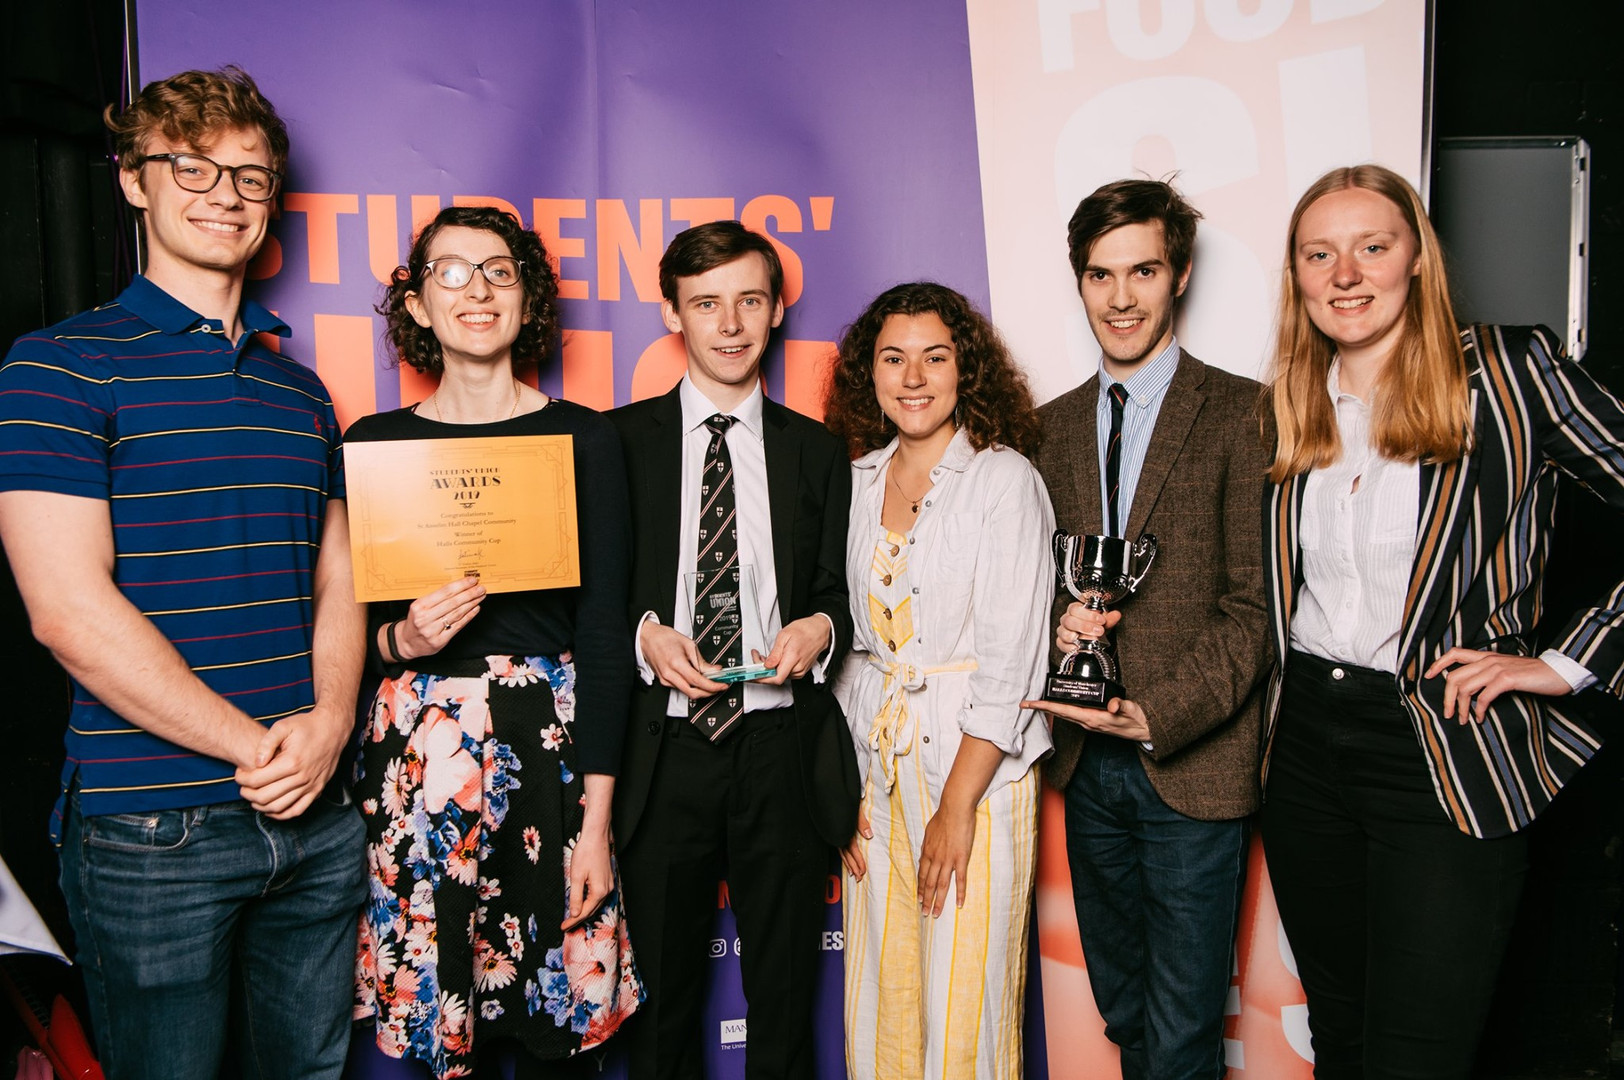 Manchester Students Union Awards